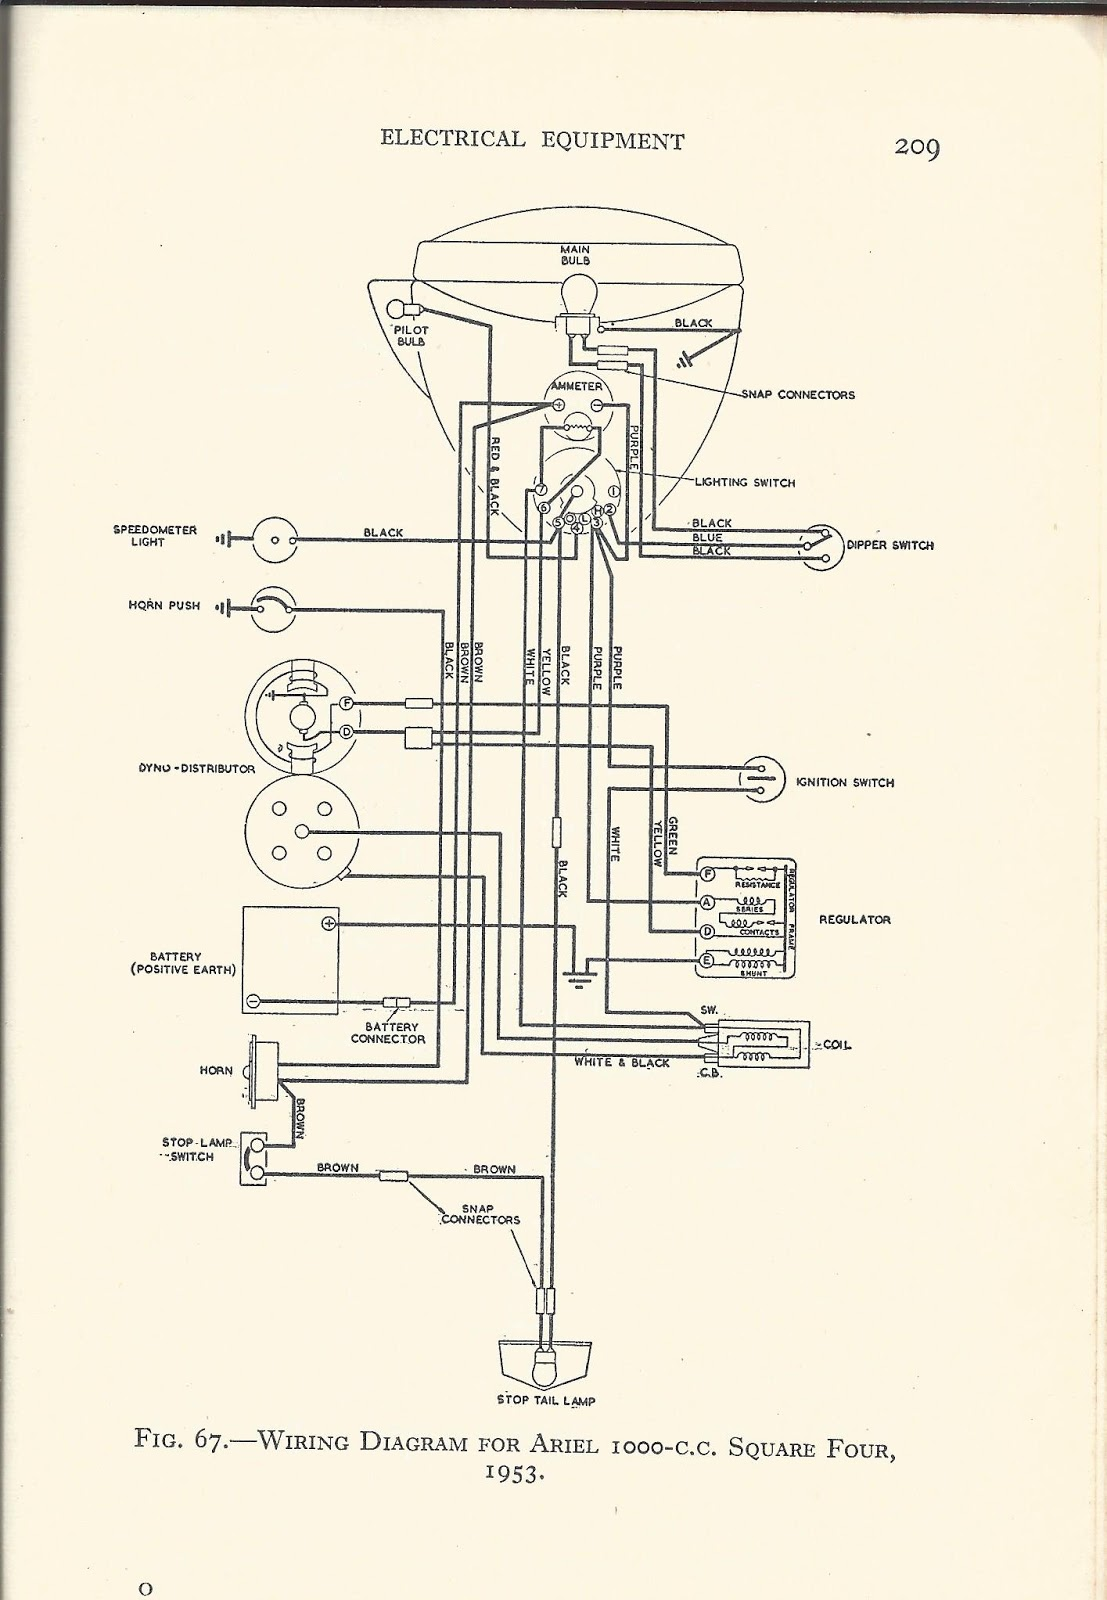 Remarkable Jet Lathe Electrical Wiring Diagram Symbol Wiring Library Wiring Cloud Oideiuggs Outletorg